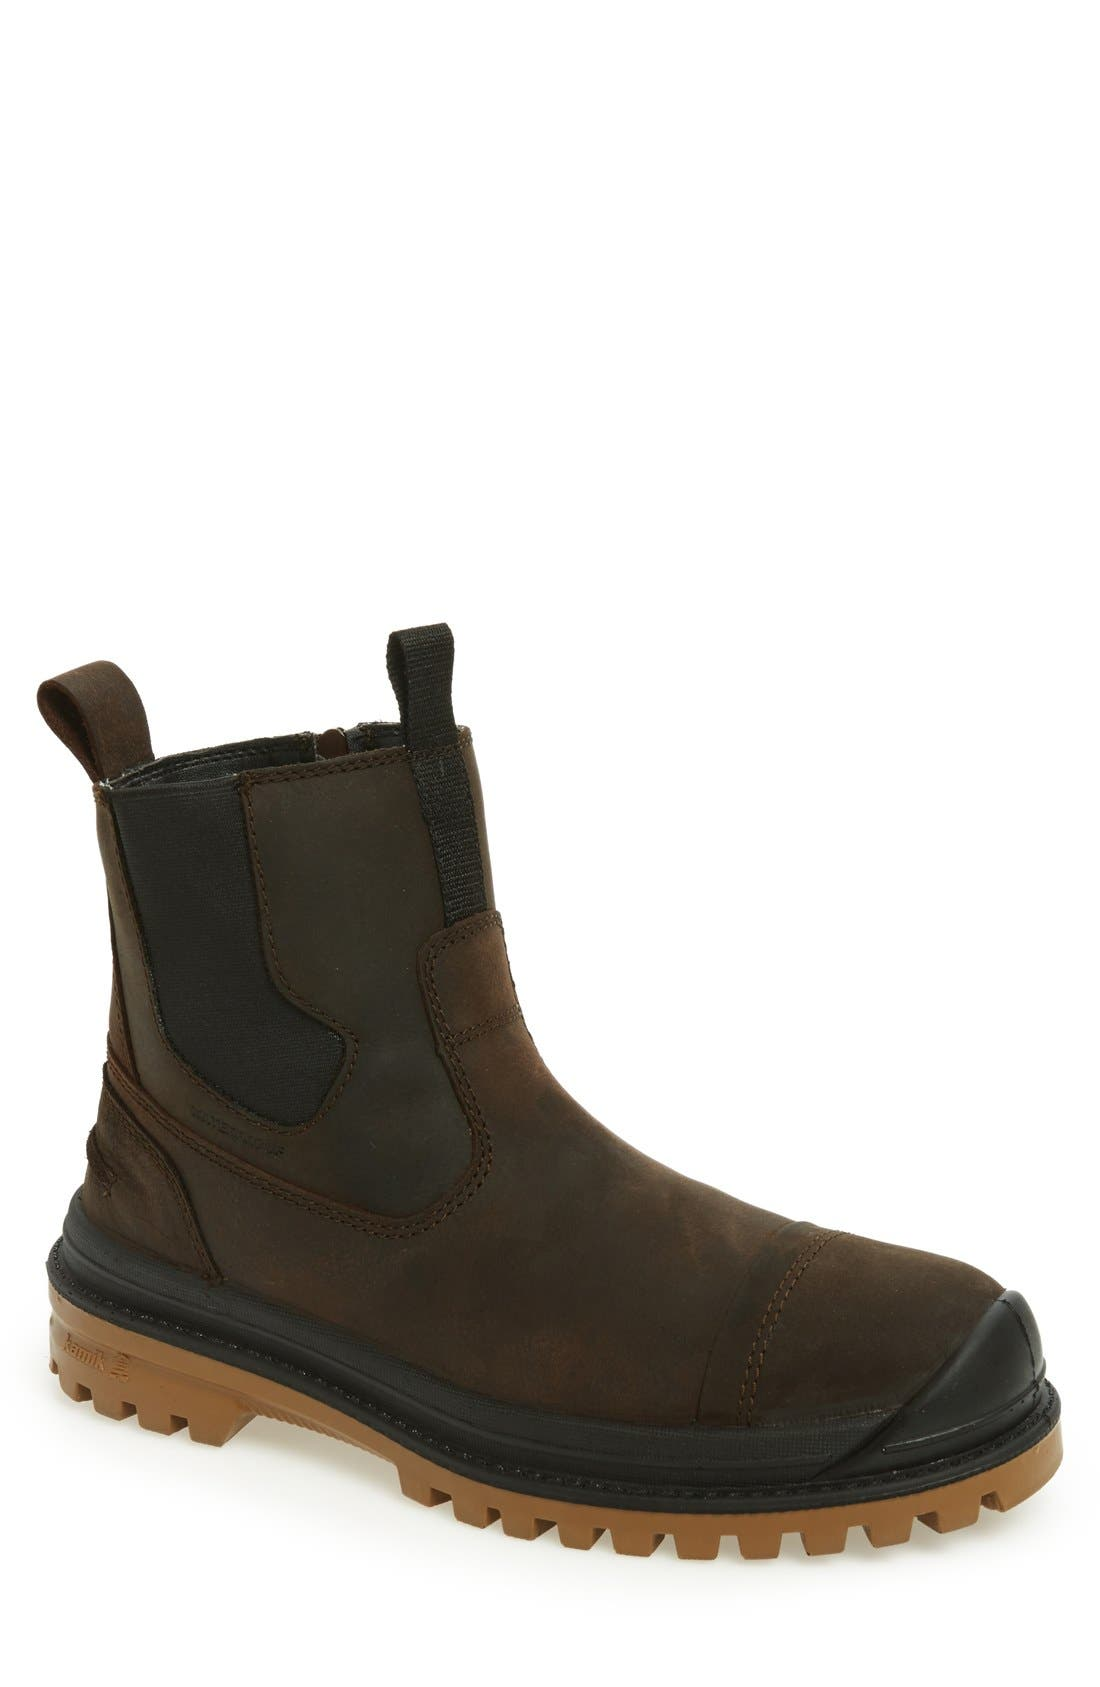 Griffon Snow Boot,                             Main thumbnail 1, color,                             Dark Brown Leather